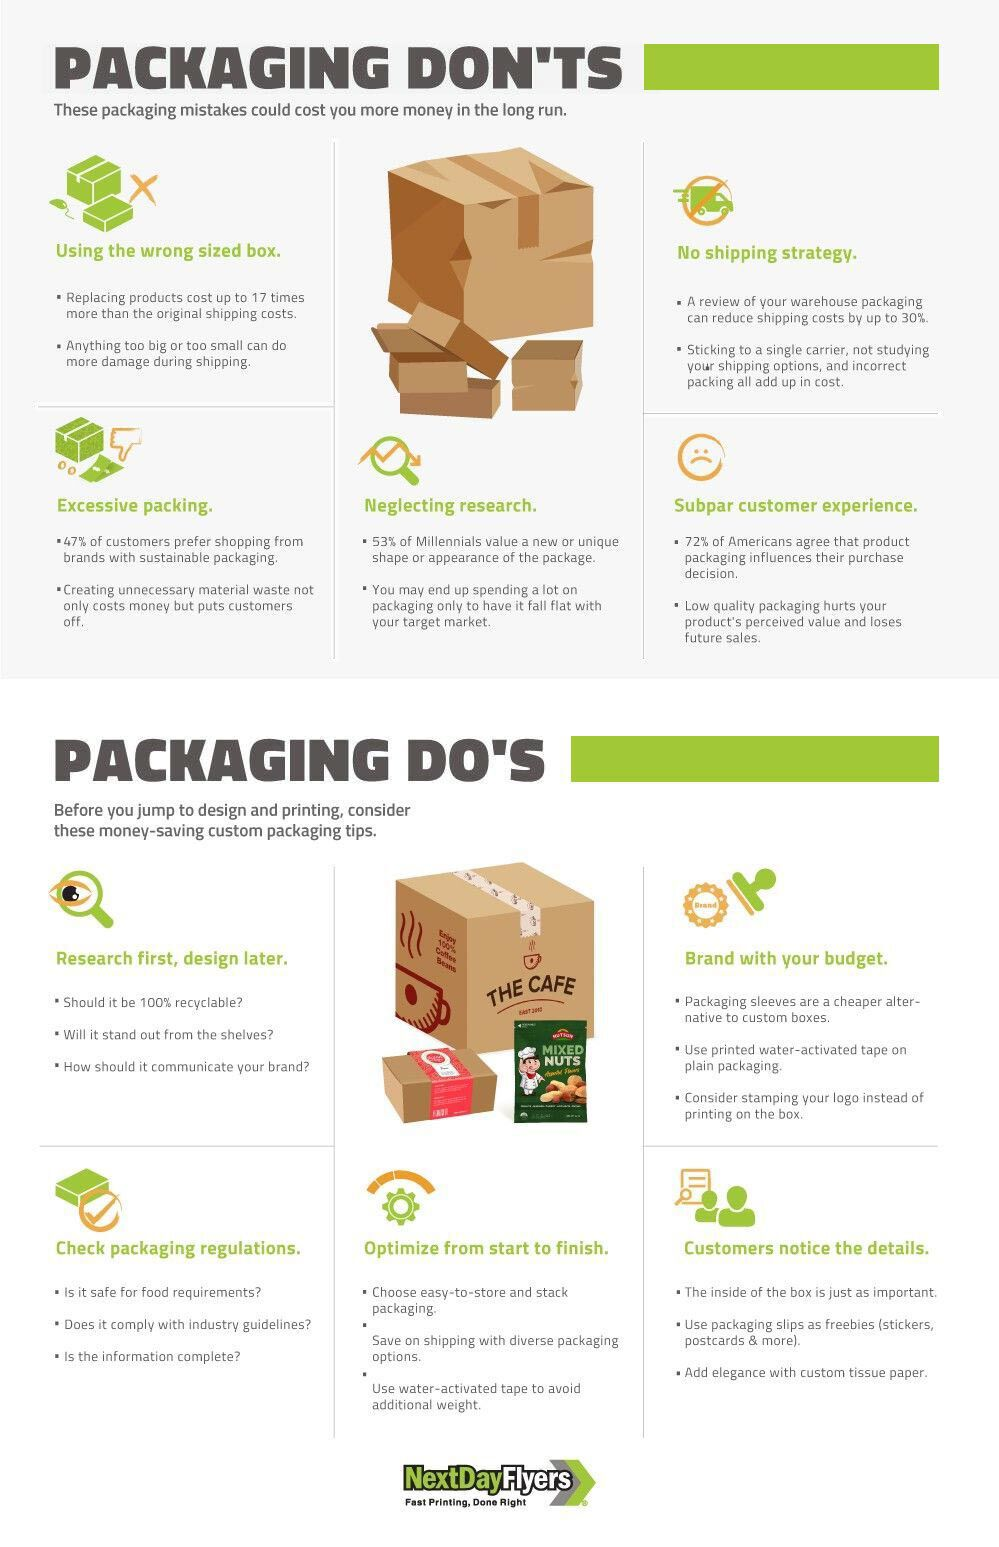 Packaging Do's and Dont's